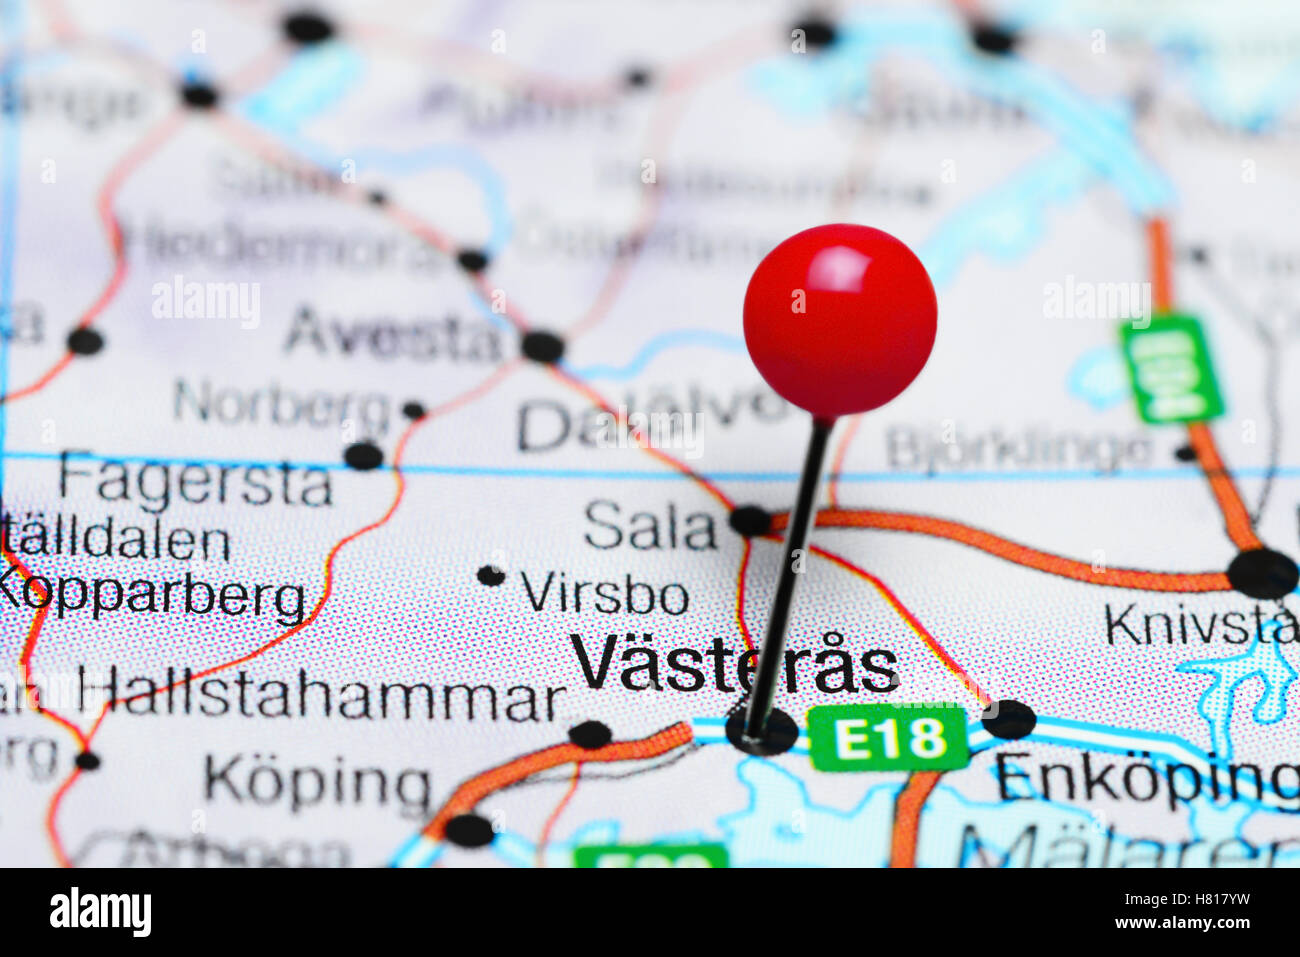 Vasteras pinned on a map of Sweden Stock Photo 125418045 Alamy